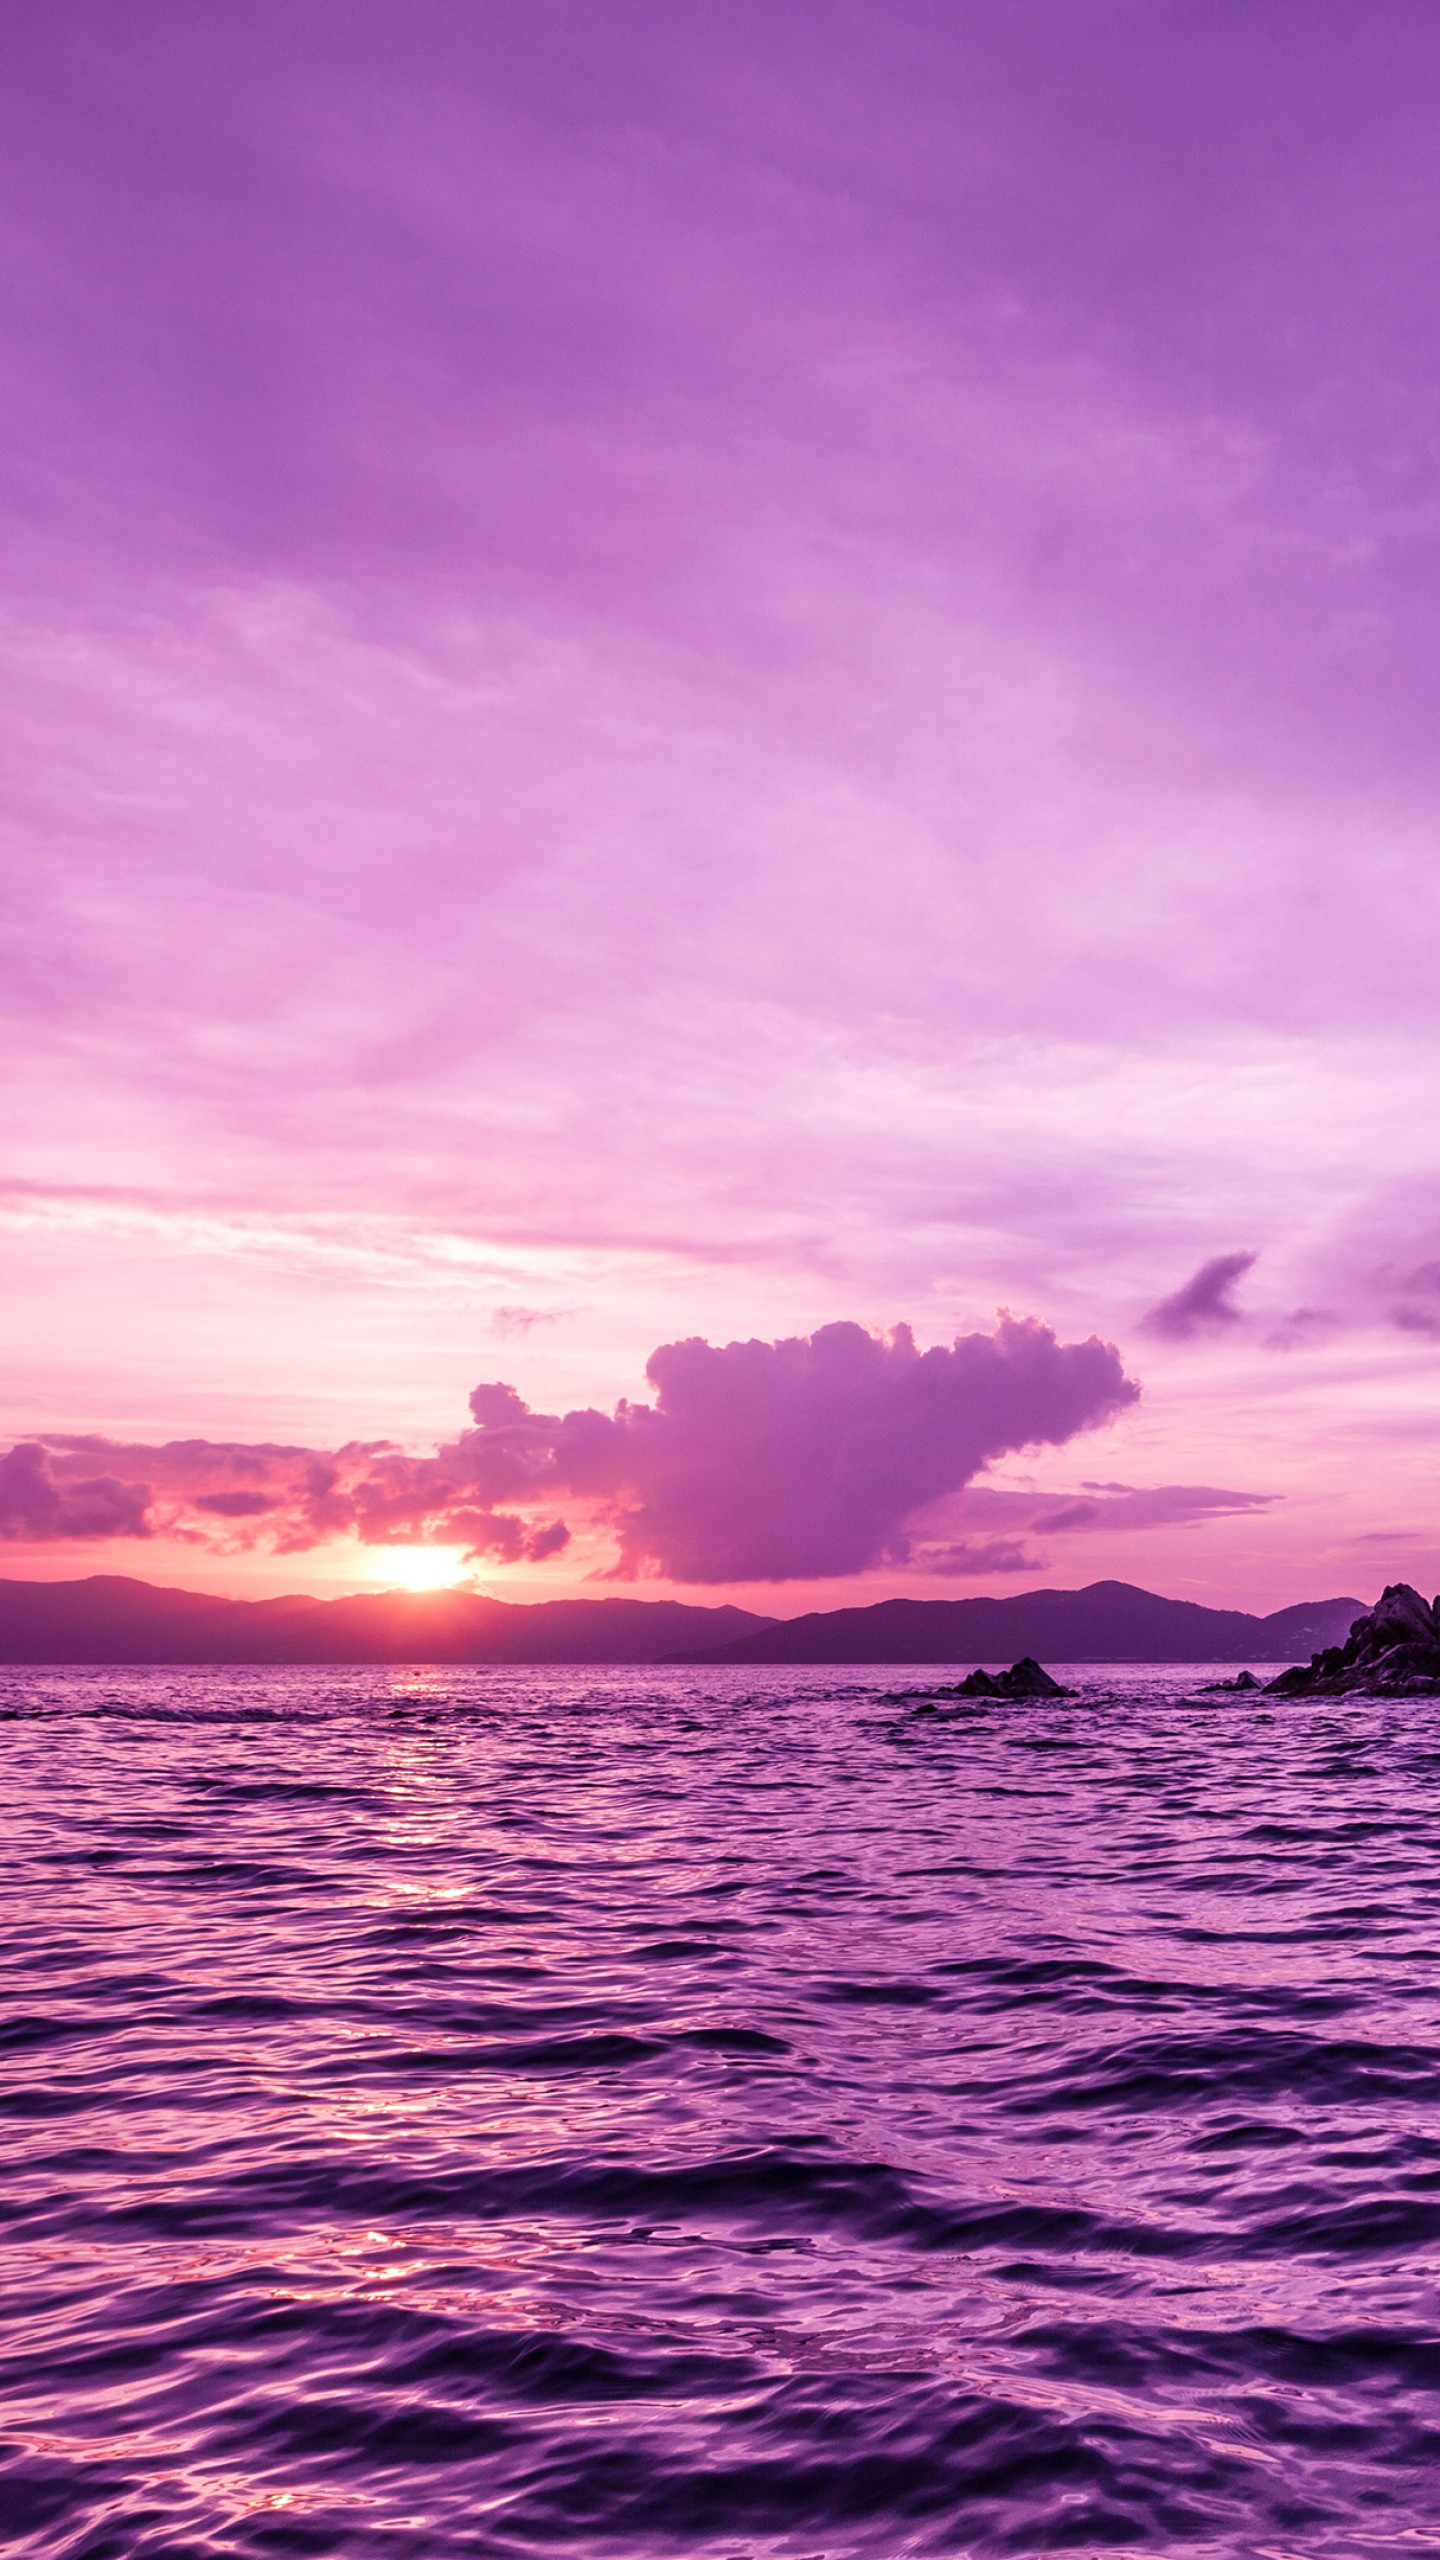 Wallpaper Pelican Island Sunset Purple Travel 11982